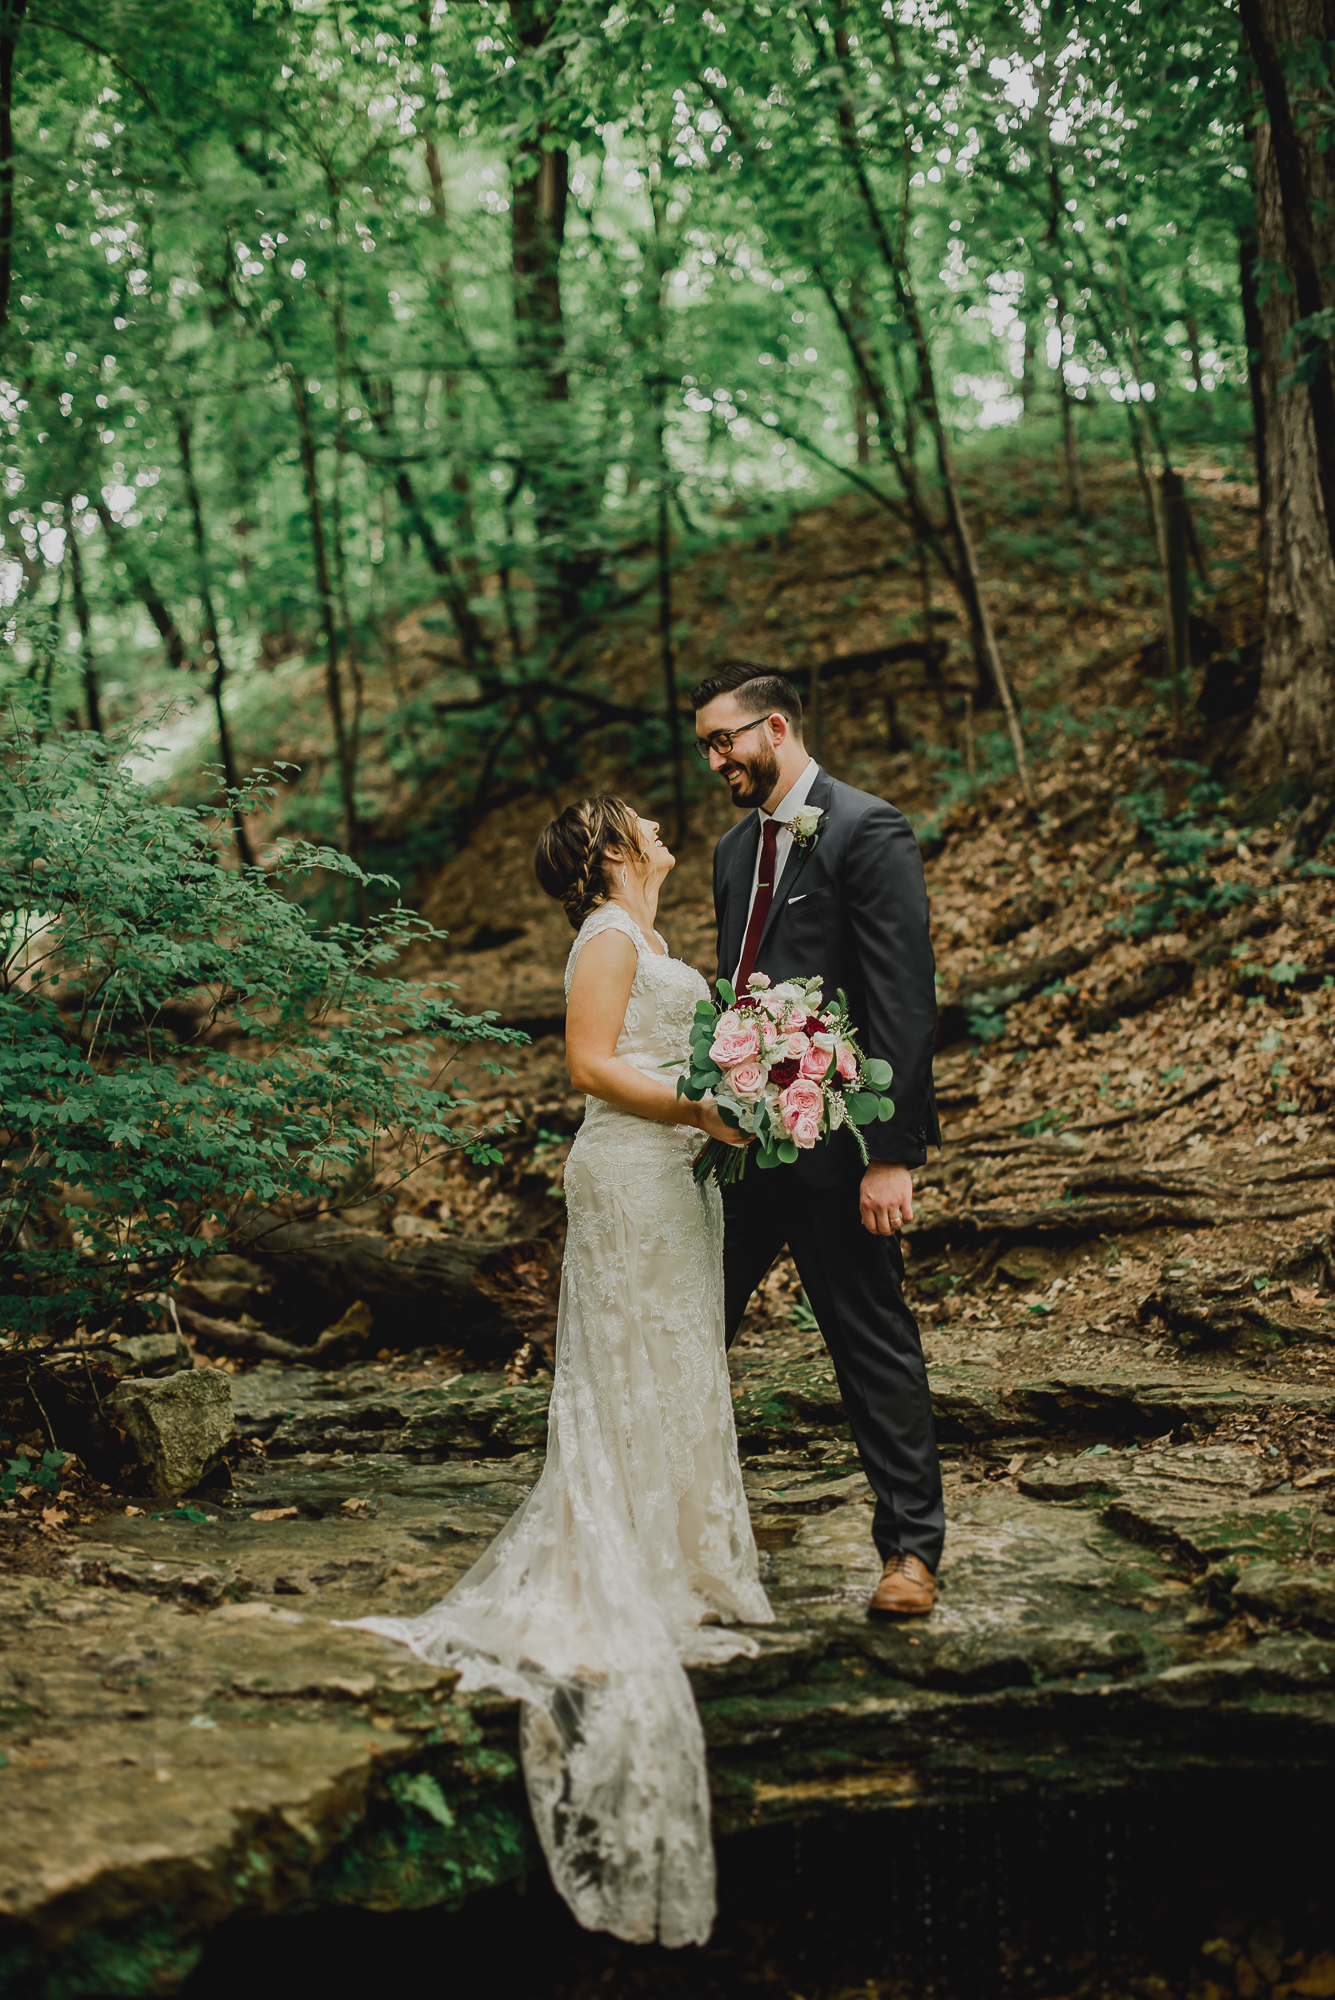 Melissa Cervantes Photography _ Kelsey + Ben Junebug Weddings Submission-69.jpg